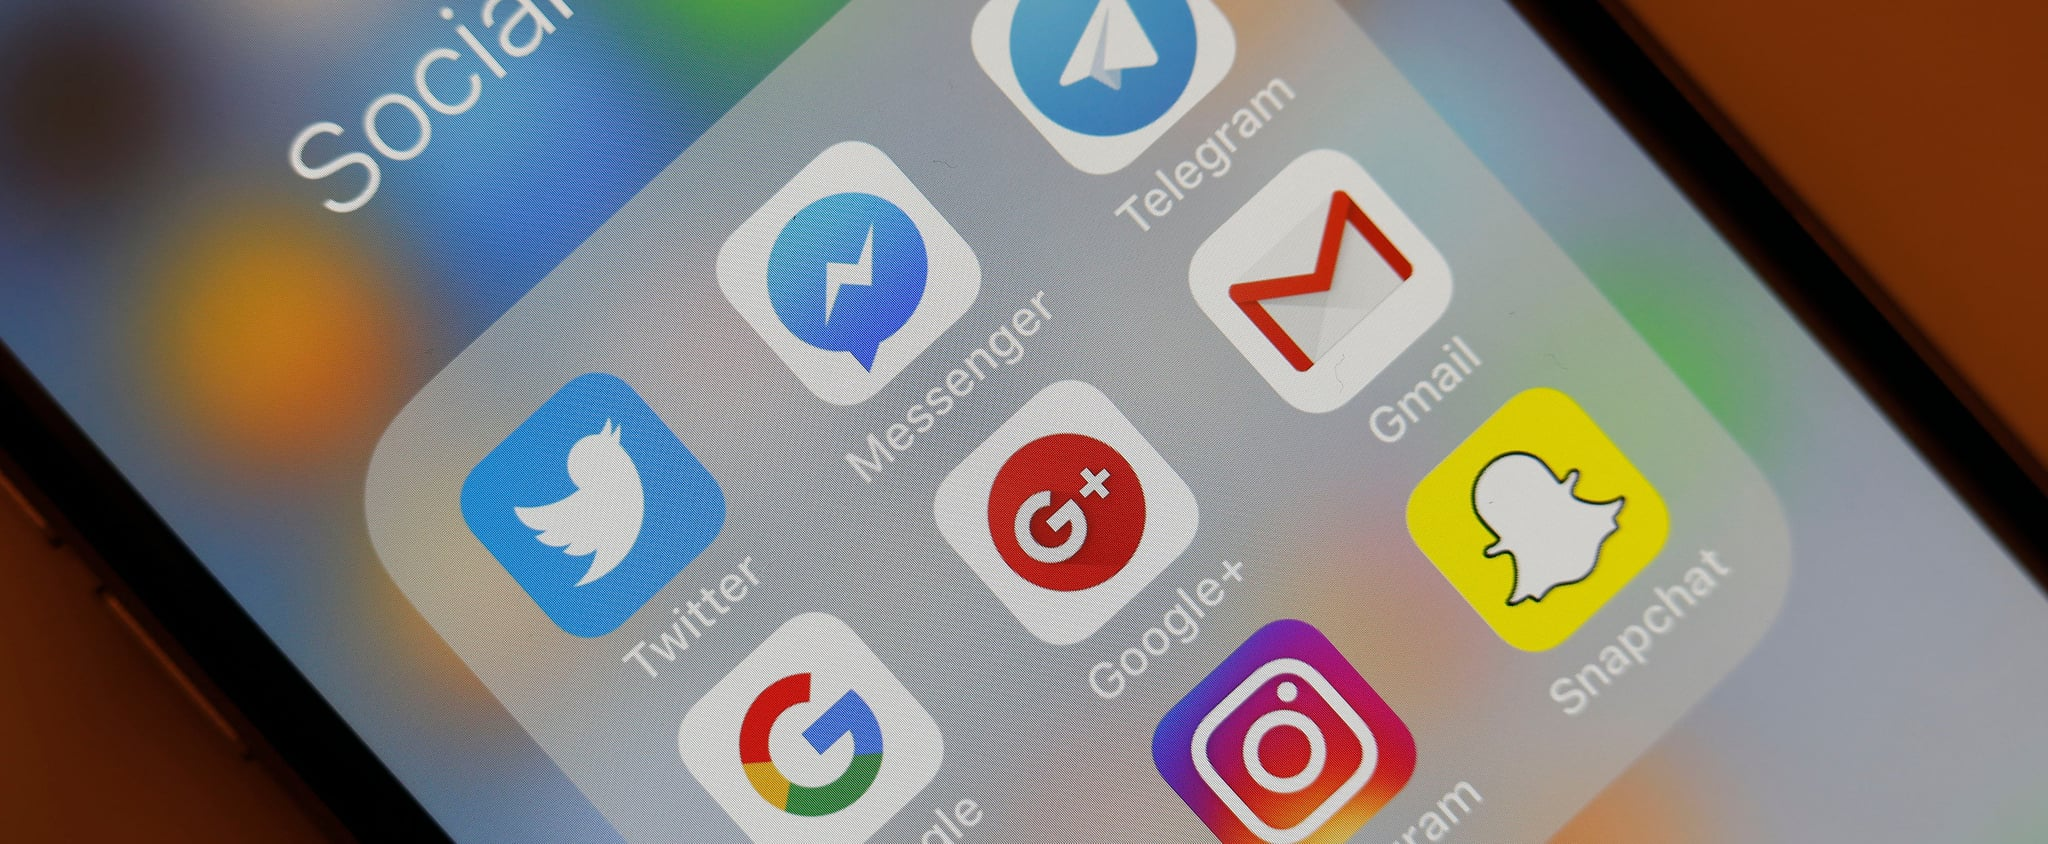 How to Select and Drag Multiple Apps on iPhone